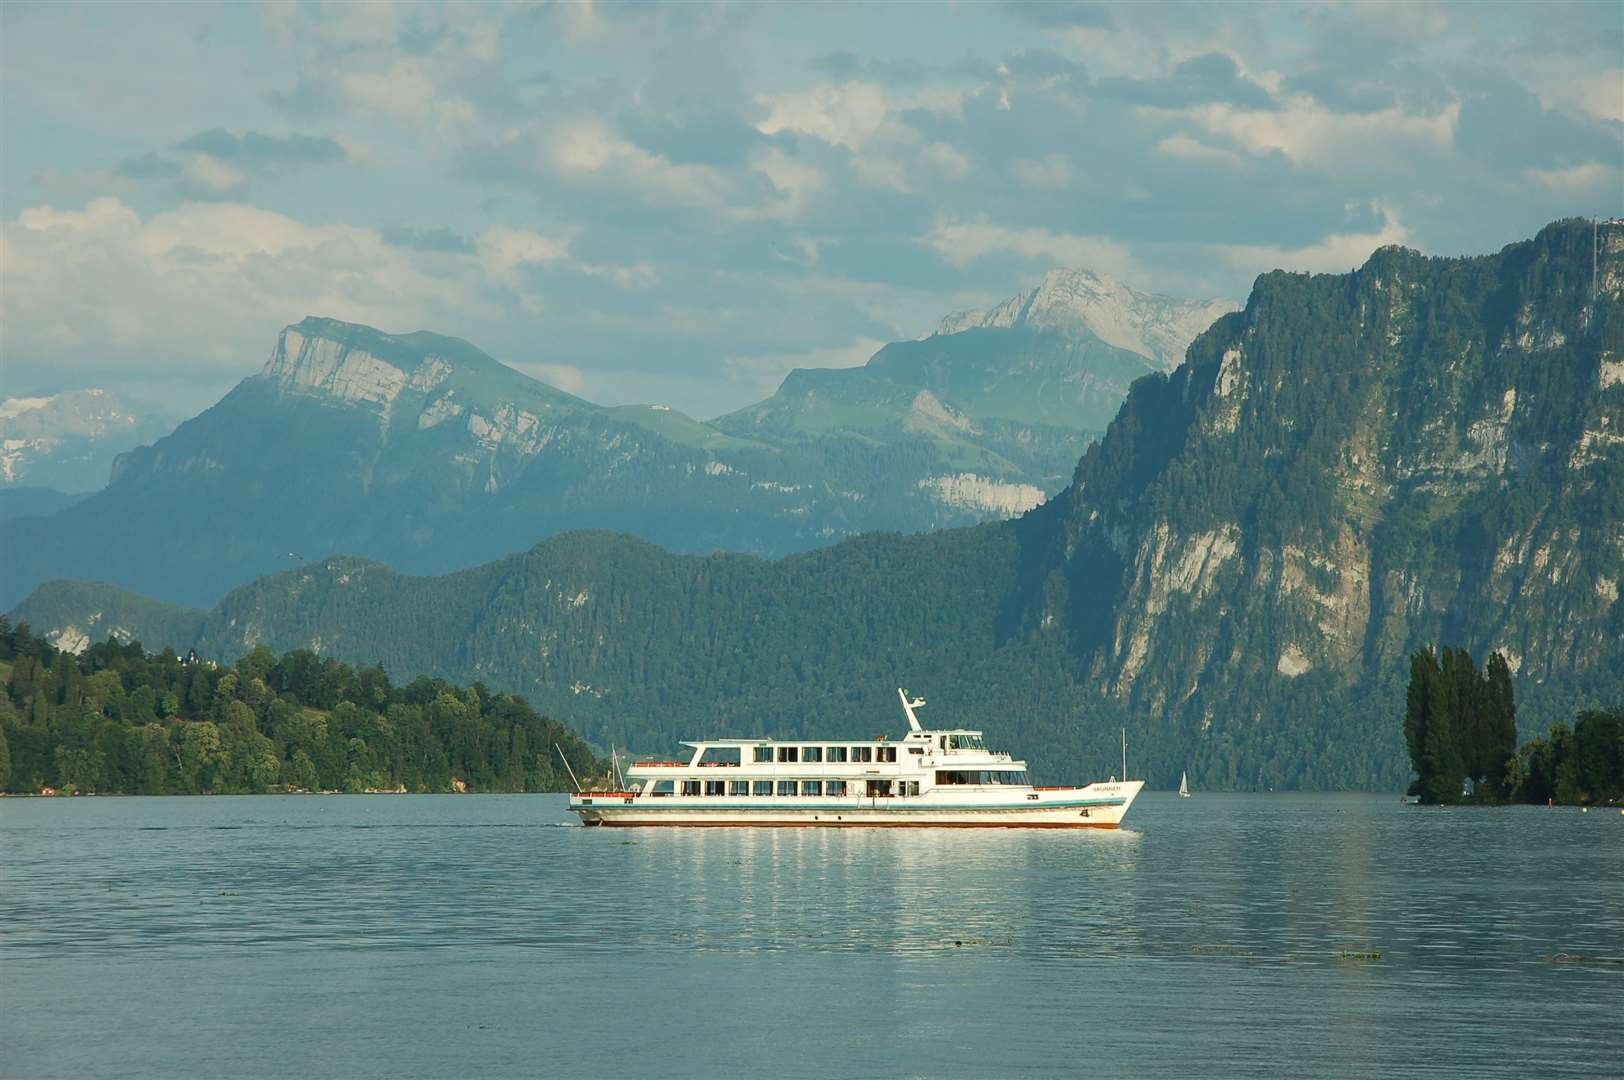 The majestic scenery and clear blue waters of the lake reflect on the MV Brunnen as it comes back to Luzern from a trip down the lake.